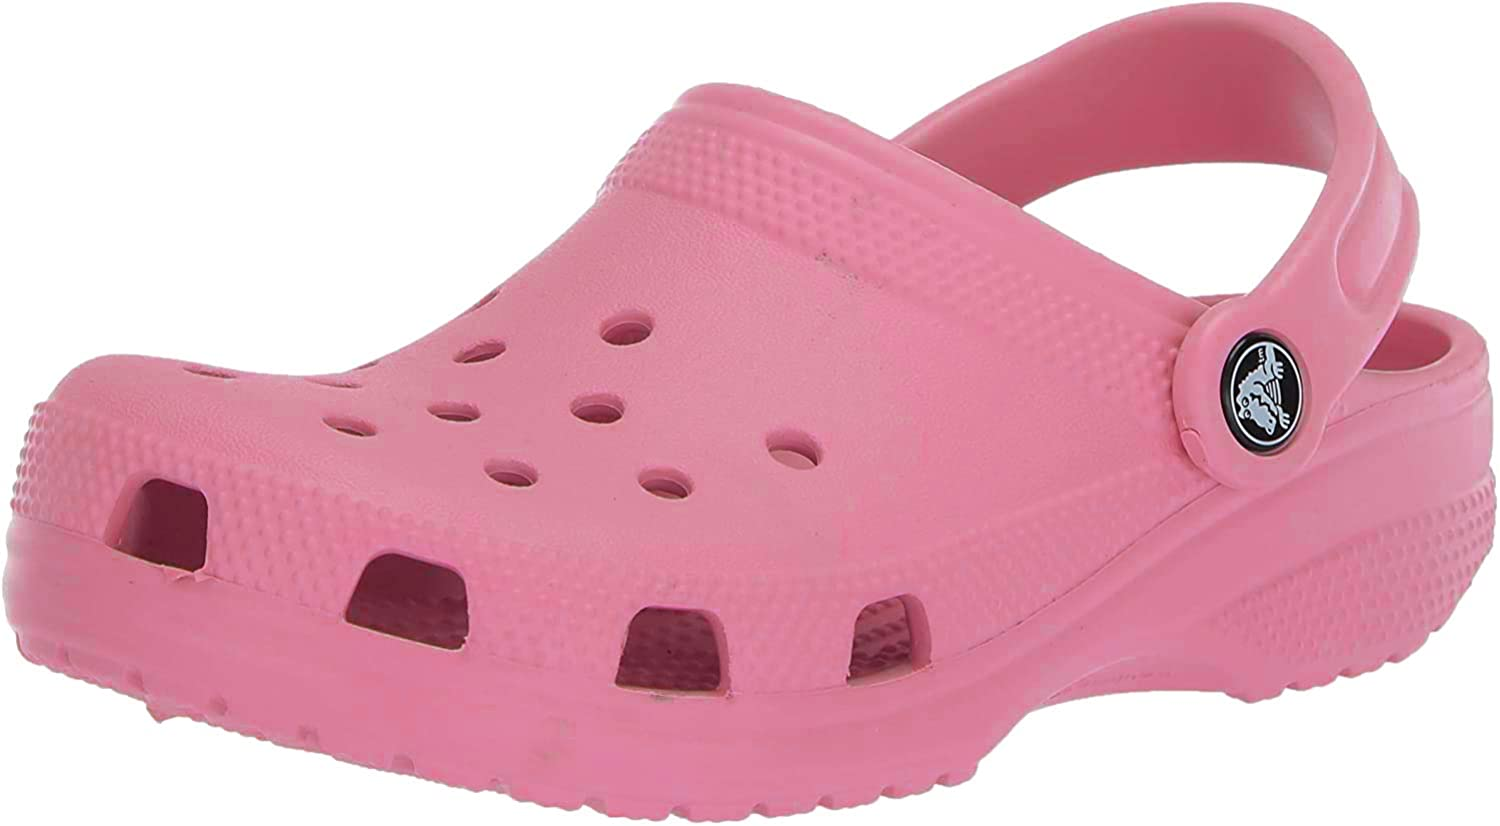 Crocs Classic Clog|Comfortable Slip On Casual Water Shoe, pink lemonade, 4 US Women / 2 US Men Medium US